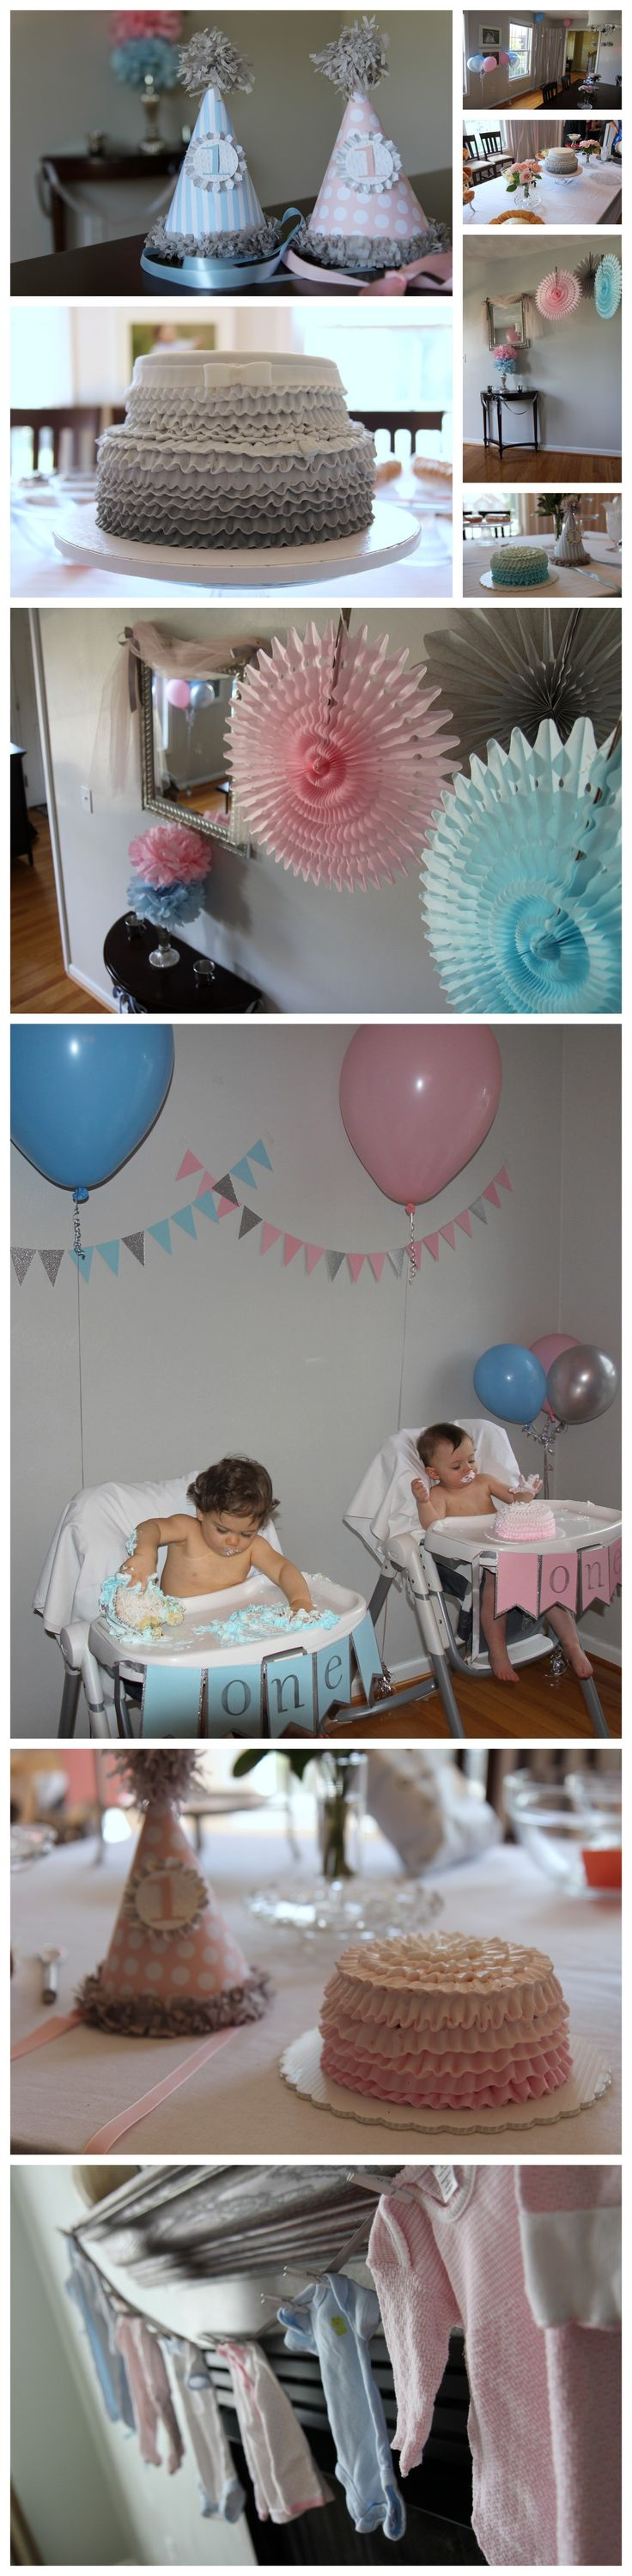 10 best twins birthday party images on Pinterest Birthdays Twin